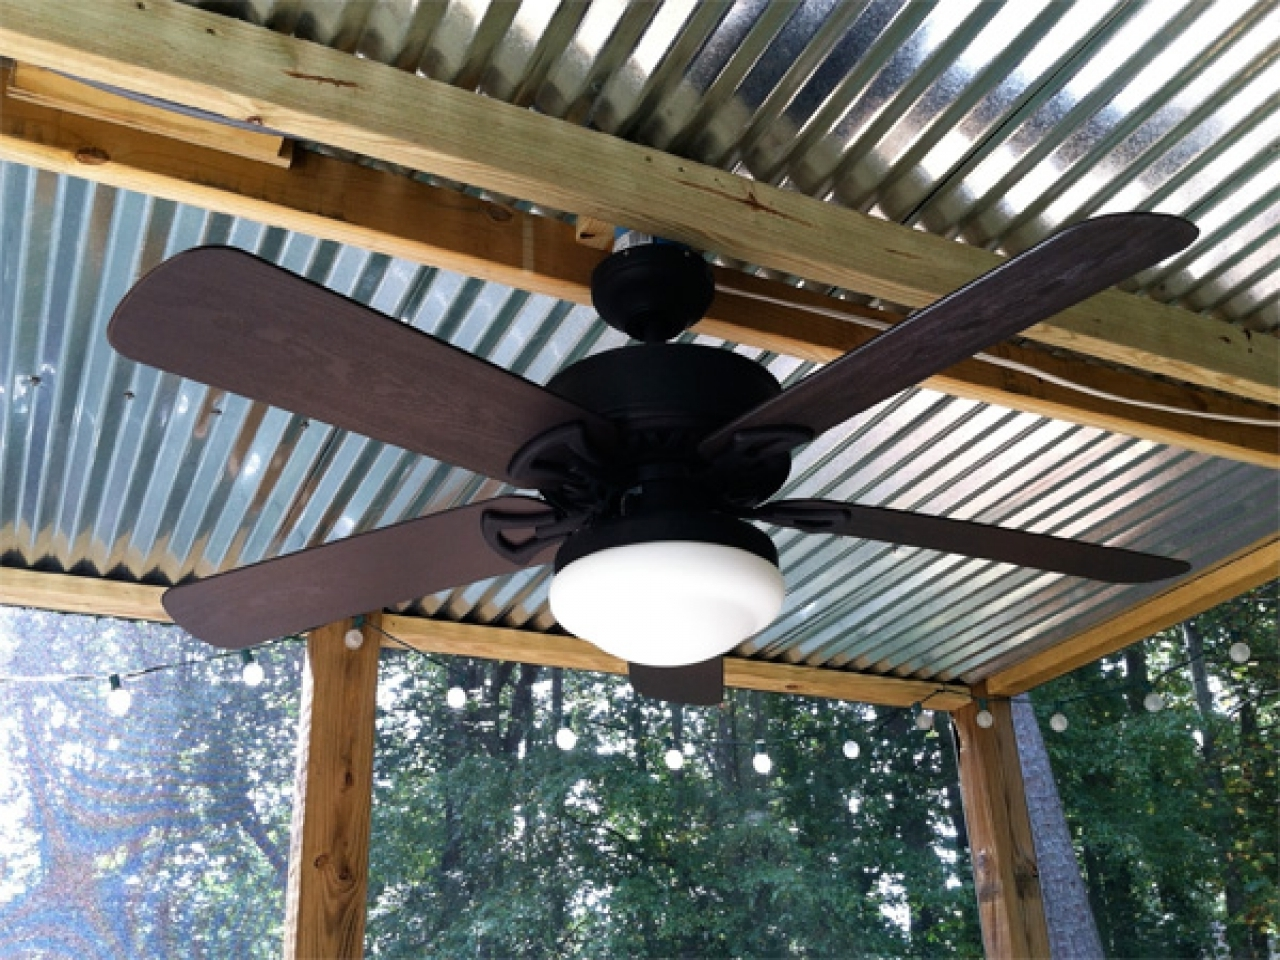 Widely Used Outdoor Porch Ceiling Fans With Lights In Nice Outdoor Patio Ceiling Fans Patio Ceiling Fans With Lights (View 20 of 20)